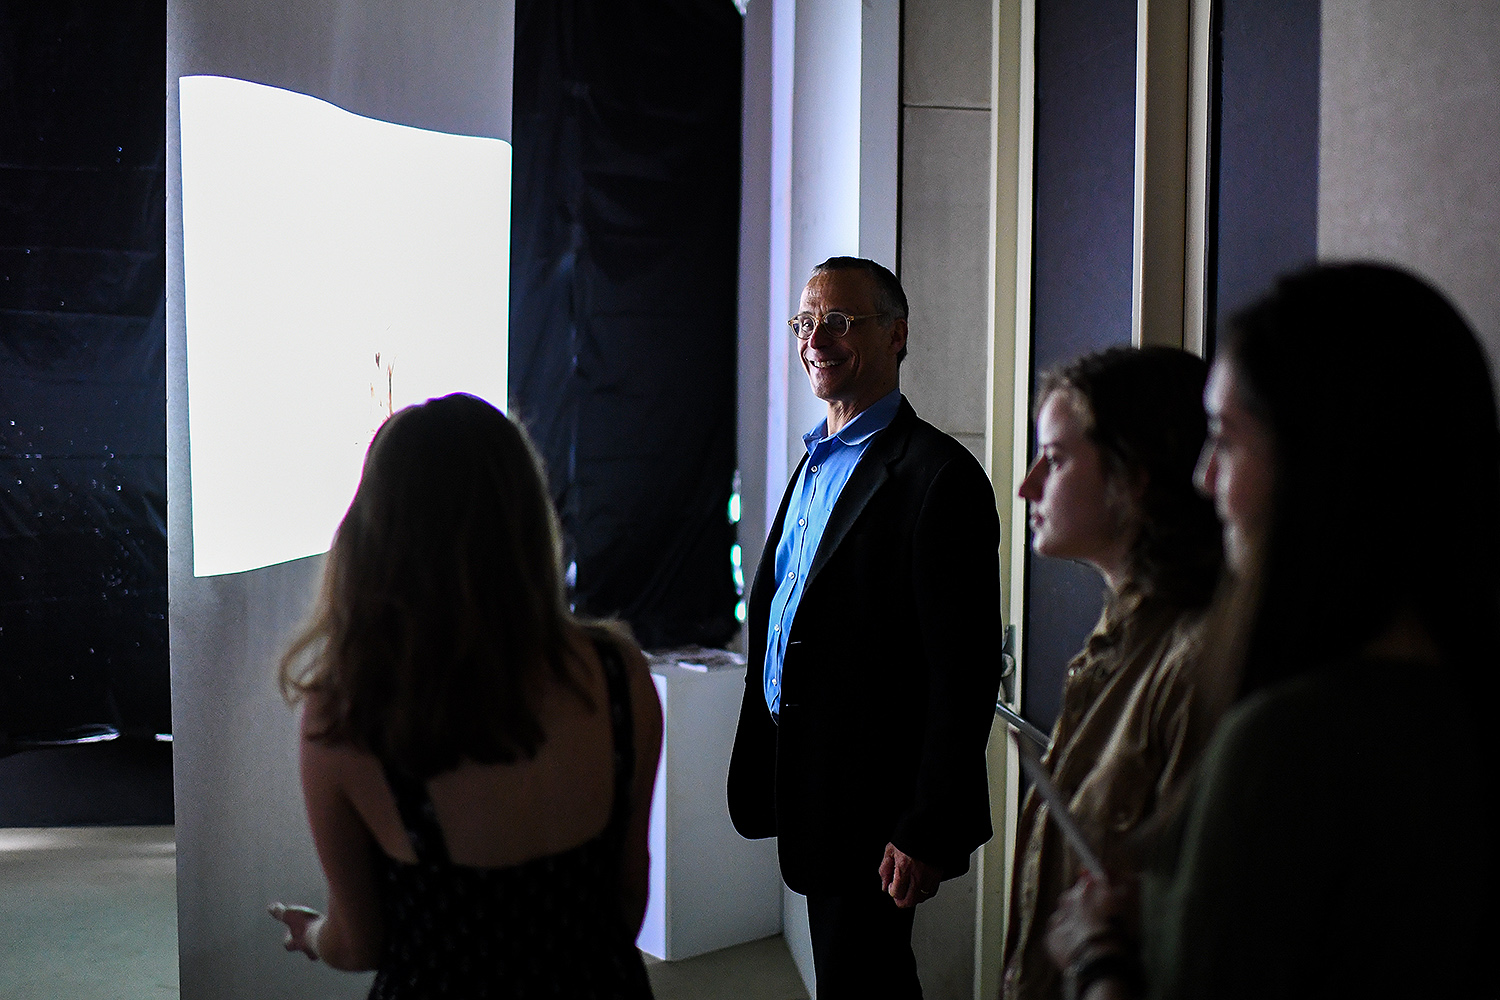 Wesleyan President Michael Roth attended the artists' reception on April 11.